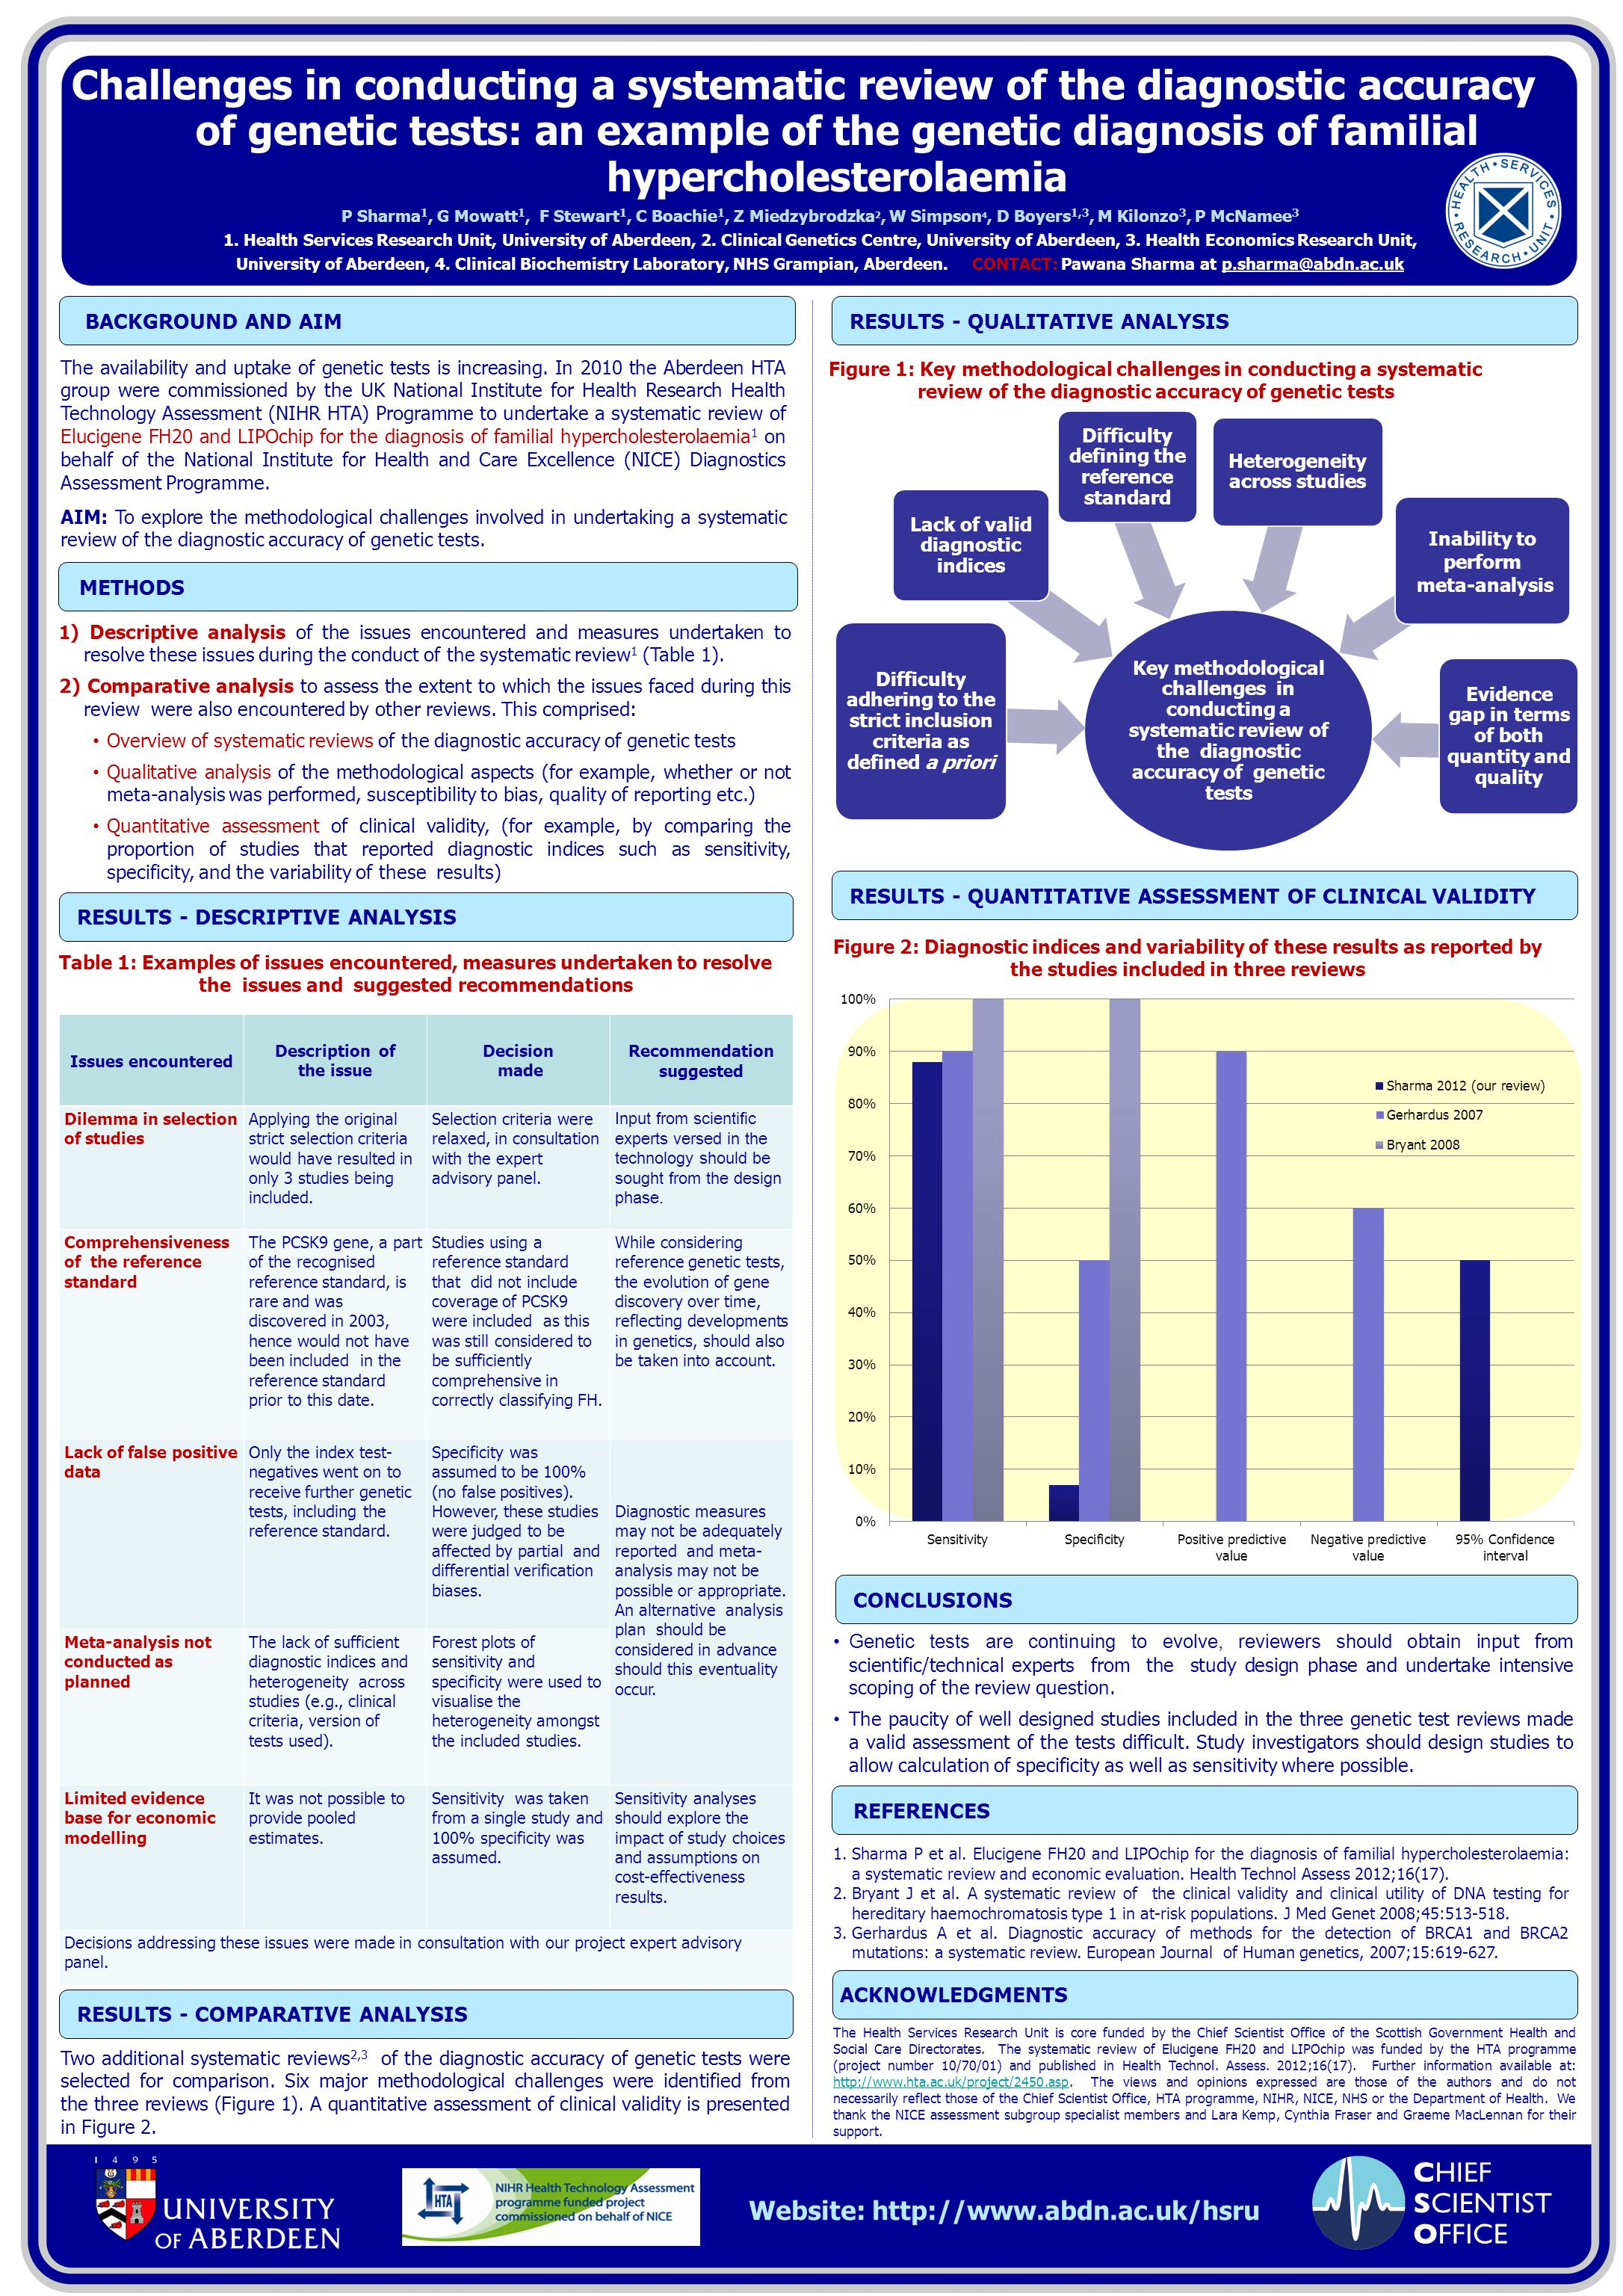 BACKGROUND AND AIM Website: http://www.abdn.ac.uk/hsru Challenges in conducting a systematic review of the diagnostic accuracy of genetic tests: an example of the genetic diagnosis of familial hypercholesterolaemia REFERENCES CONCLUSIONS METHODS P Sharma 1, G Mowatt 1, F Stewart 1, C Boachie 1, Z Miedzybrodzka 2, W Simpson 4, D Boyers 1,3, M Kilonzo 3, P McNamee 3 1.